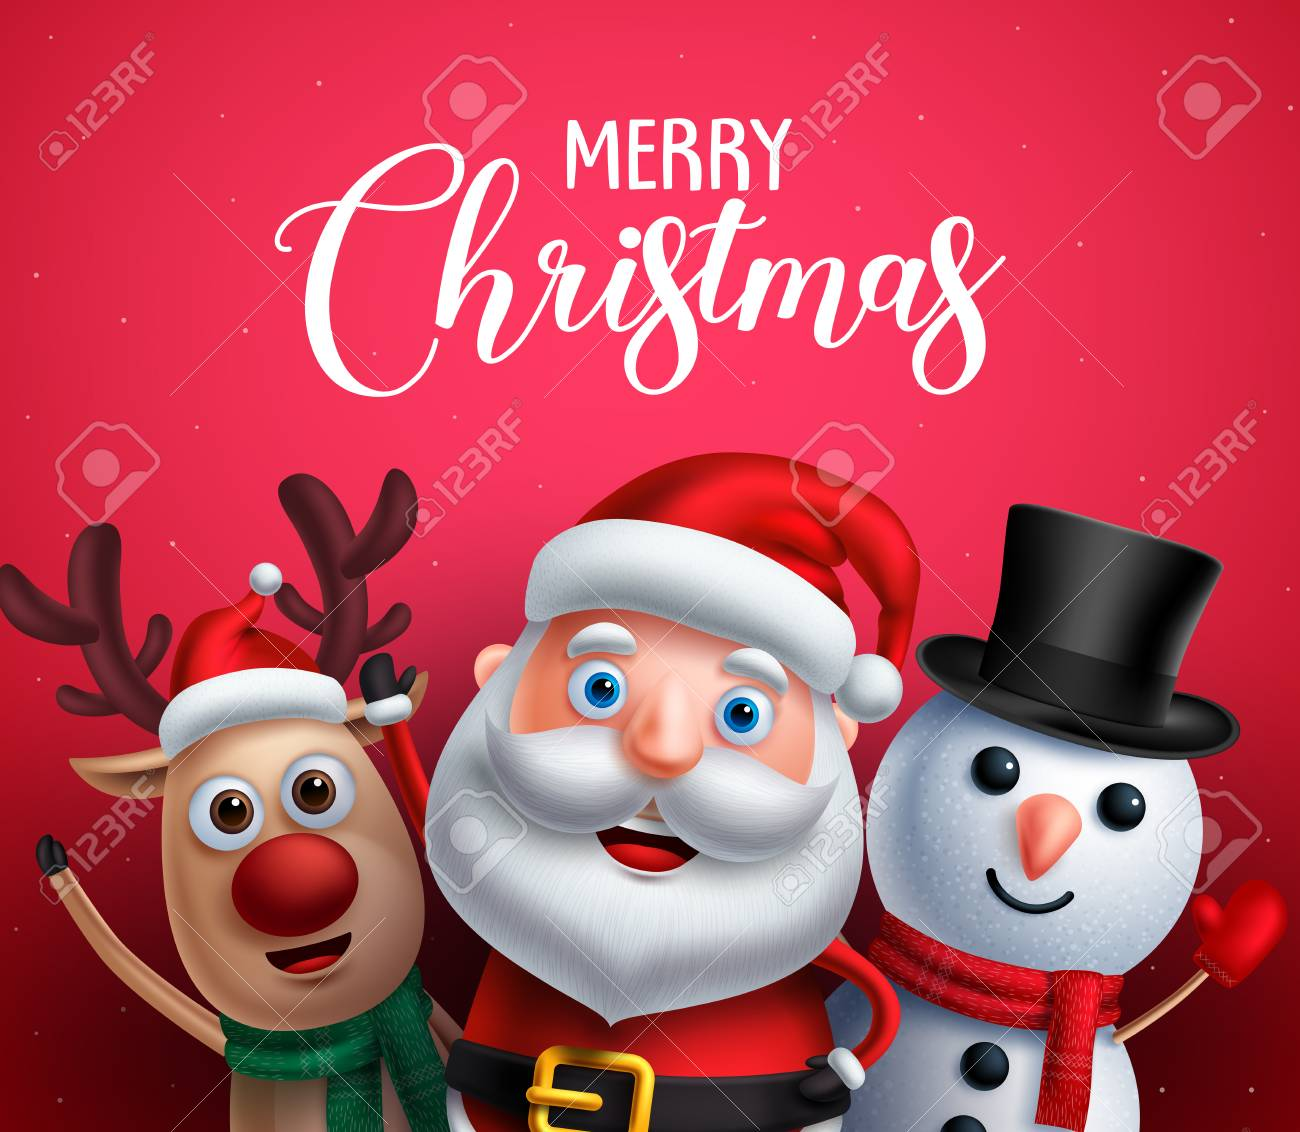 Merry christmas greeting text with santa claus, reindeer and snowman vector characters happy sing christmas carol in red background. Vector illustration. - 108023921